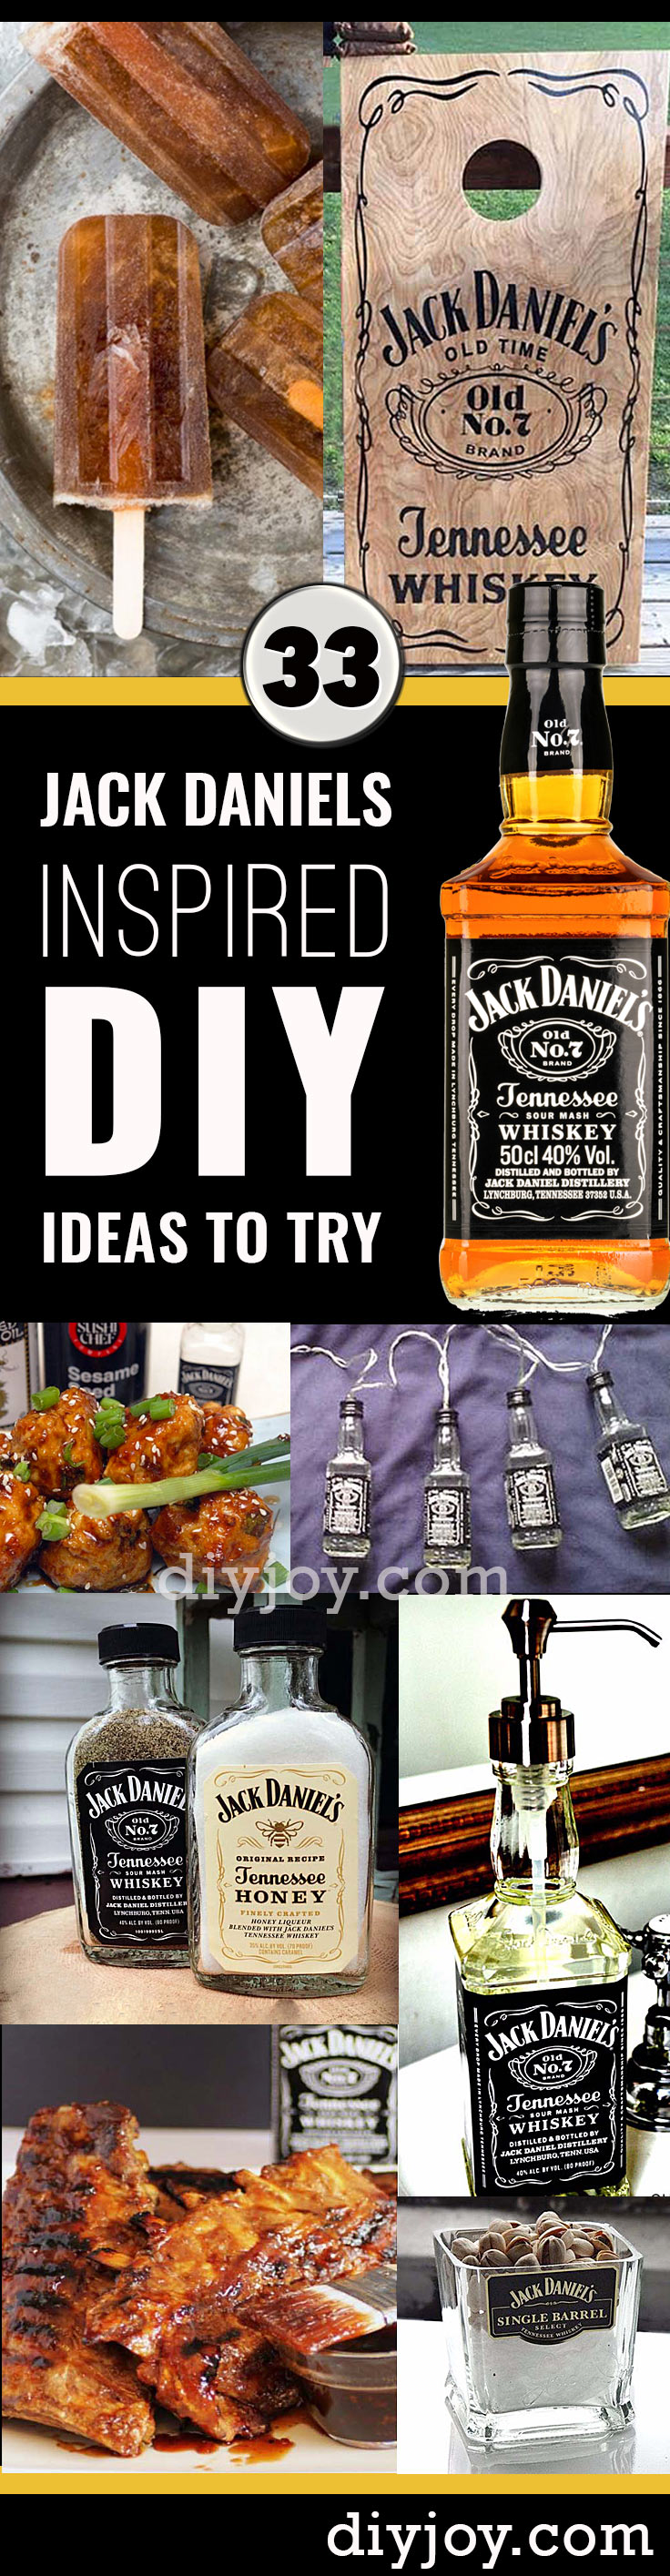 fun diy ideas inspired by jack daniels - recipes, projects & crafts